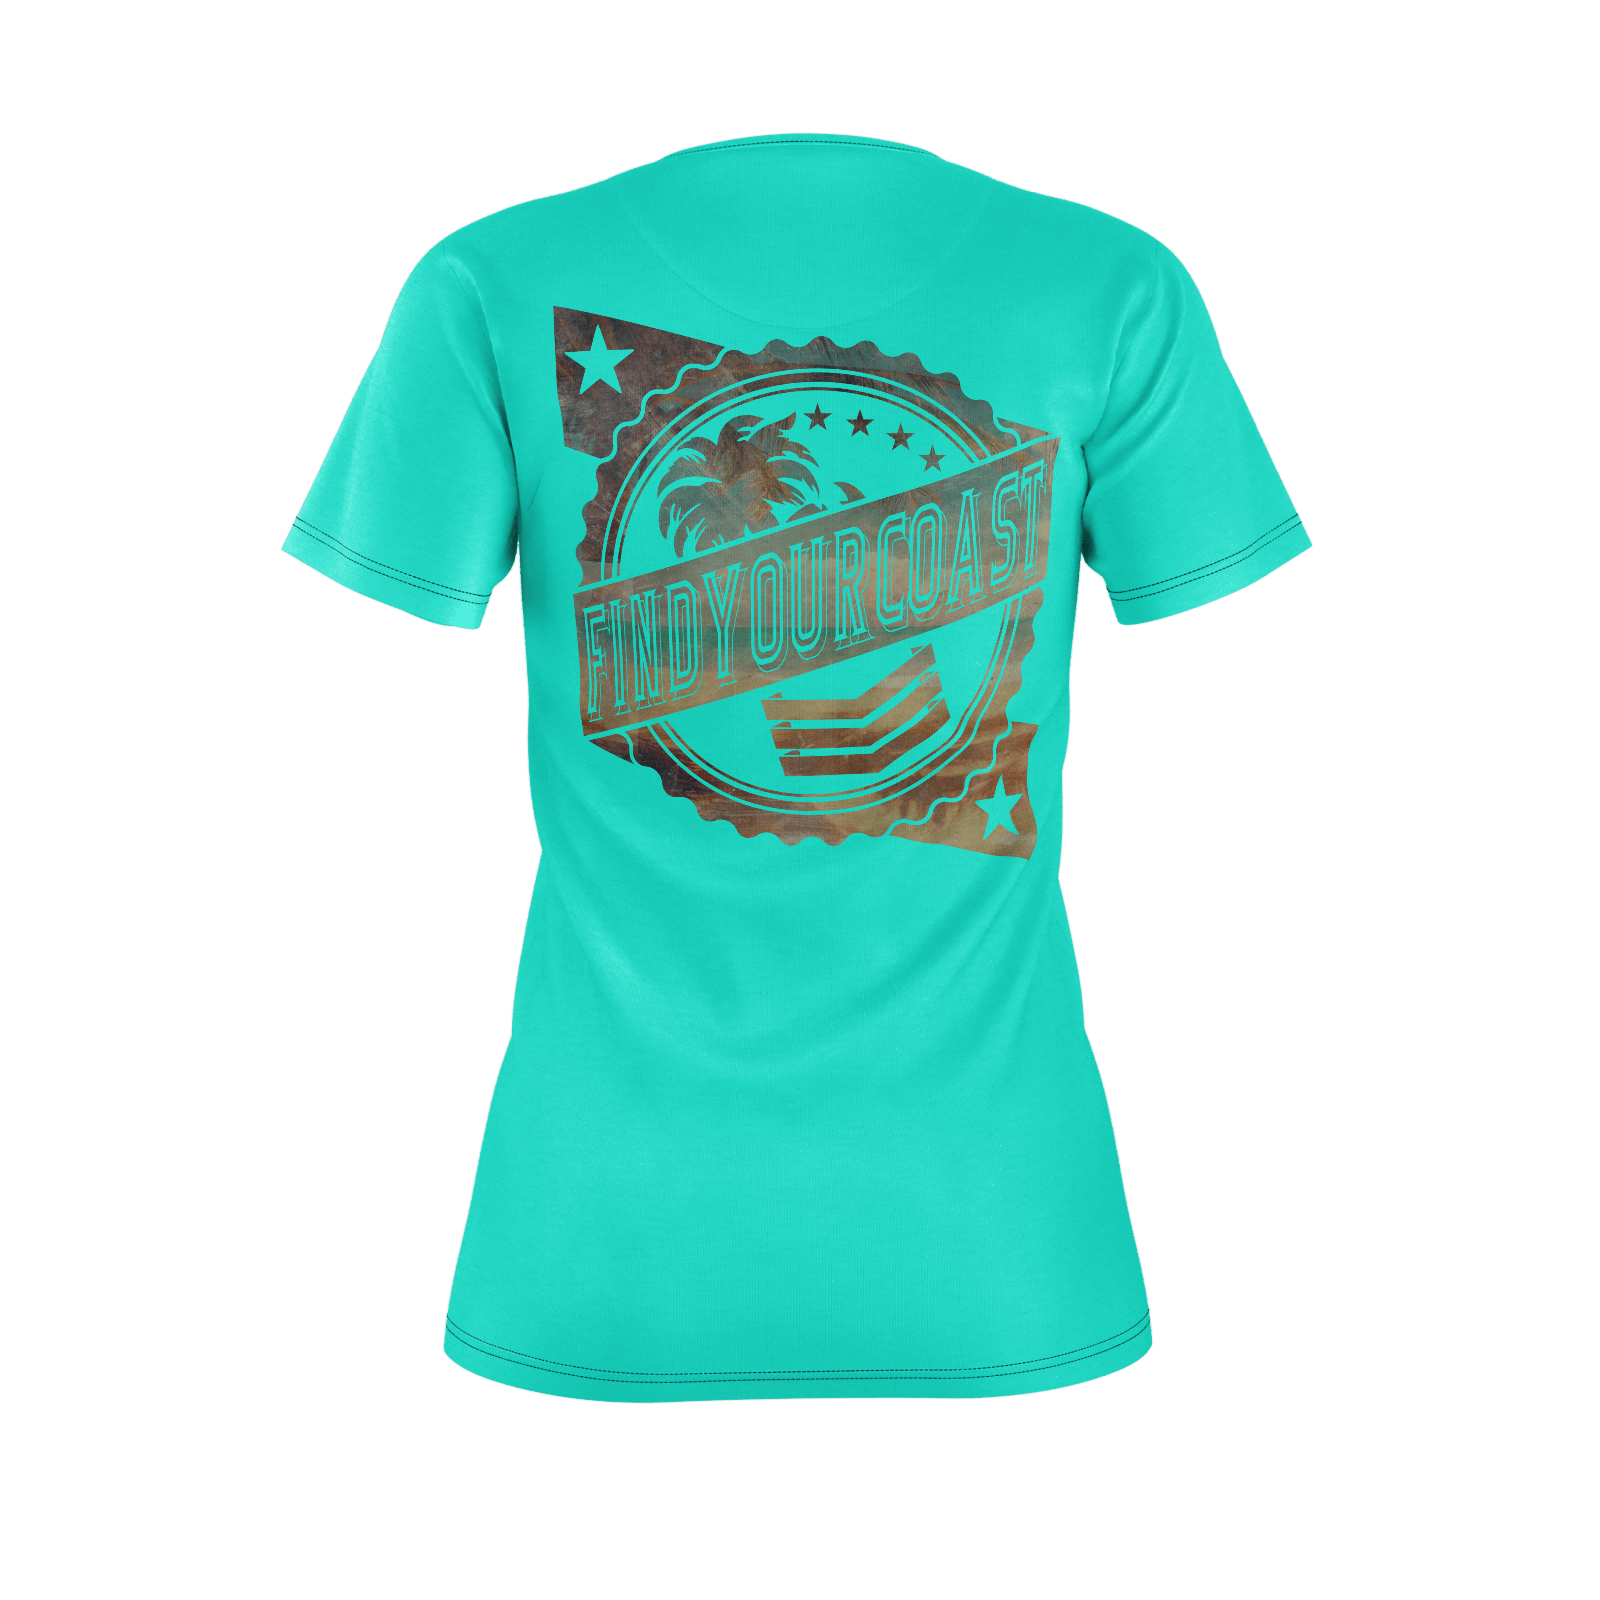 Women's Find Your Coast Sustainable Badge Teal Tee